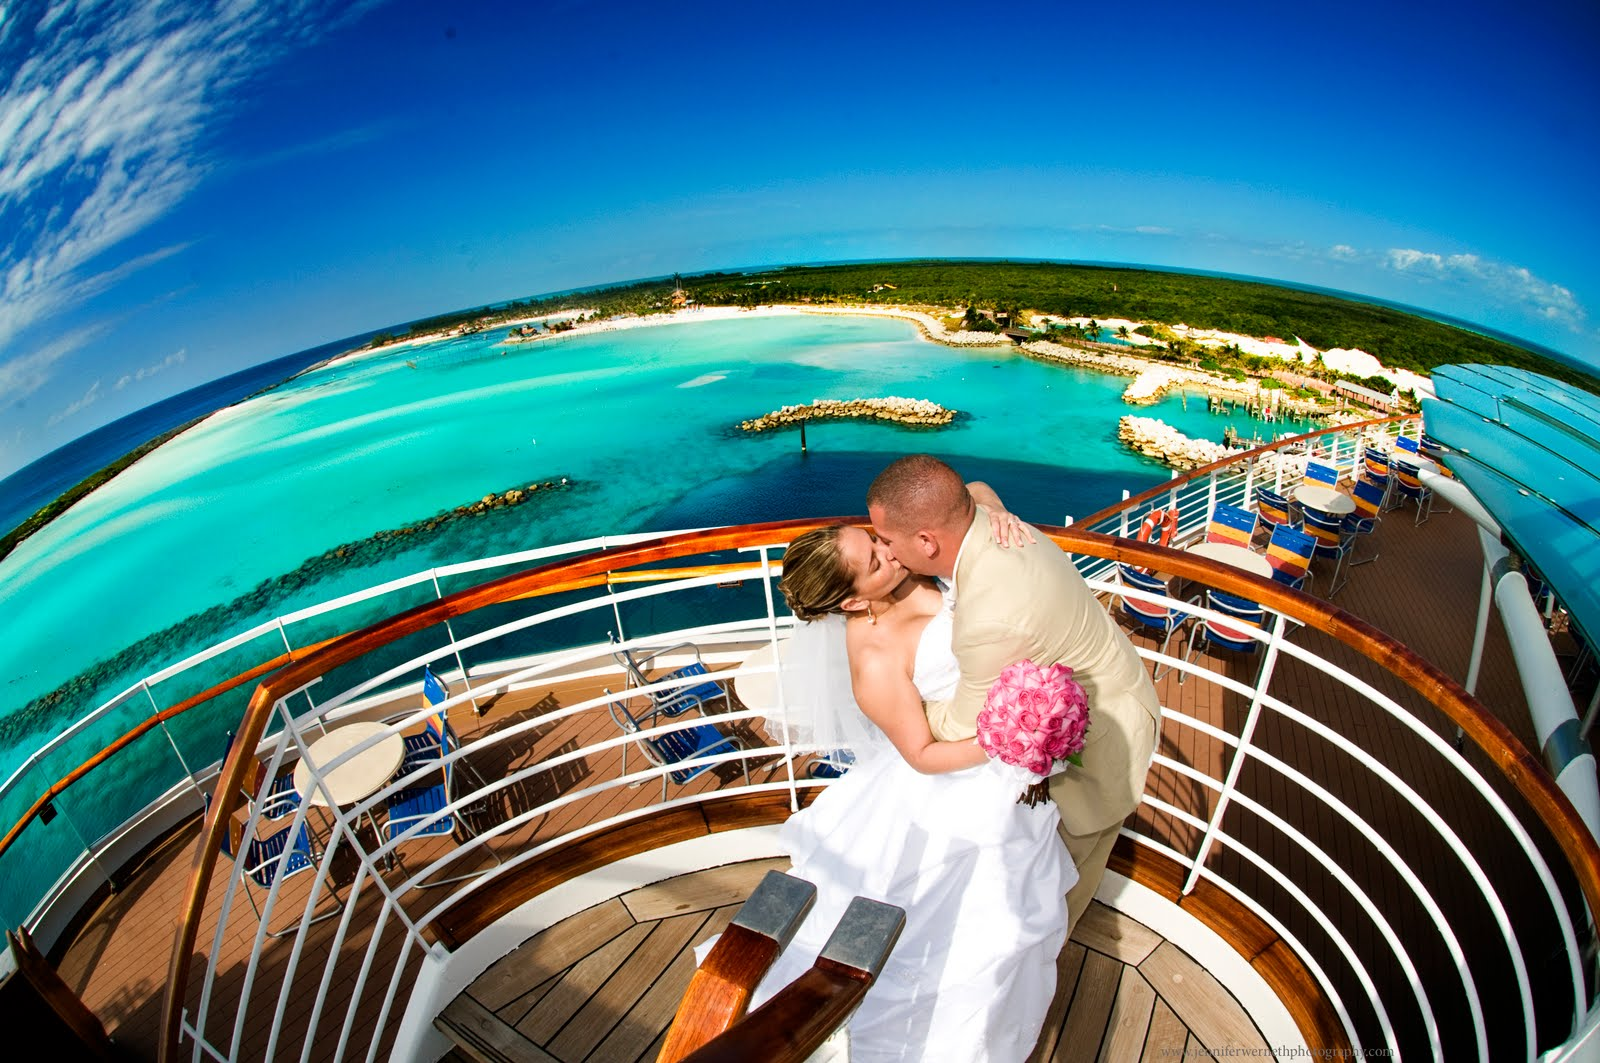 karen daniels wedding disney wonder cruise wedding photography - Cruise Ship Photographer